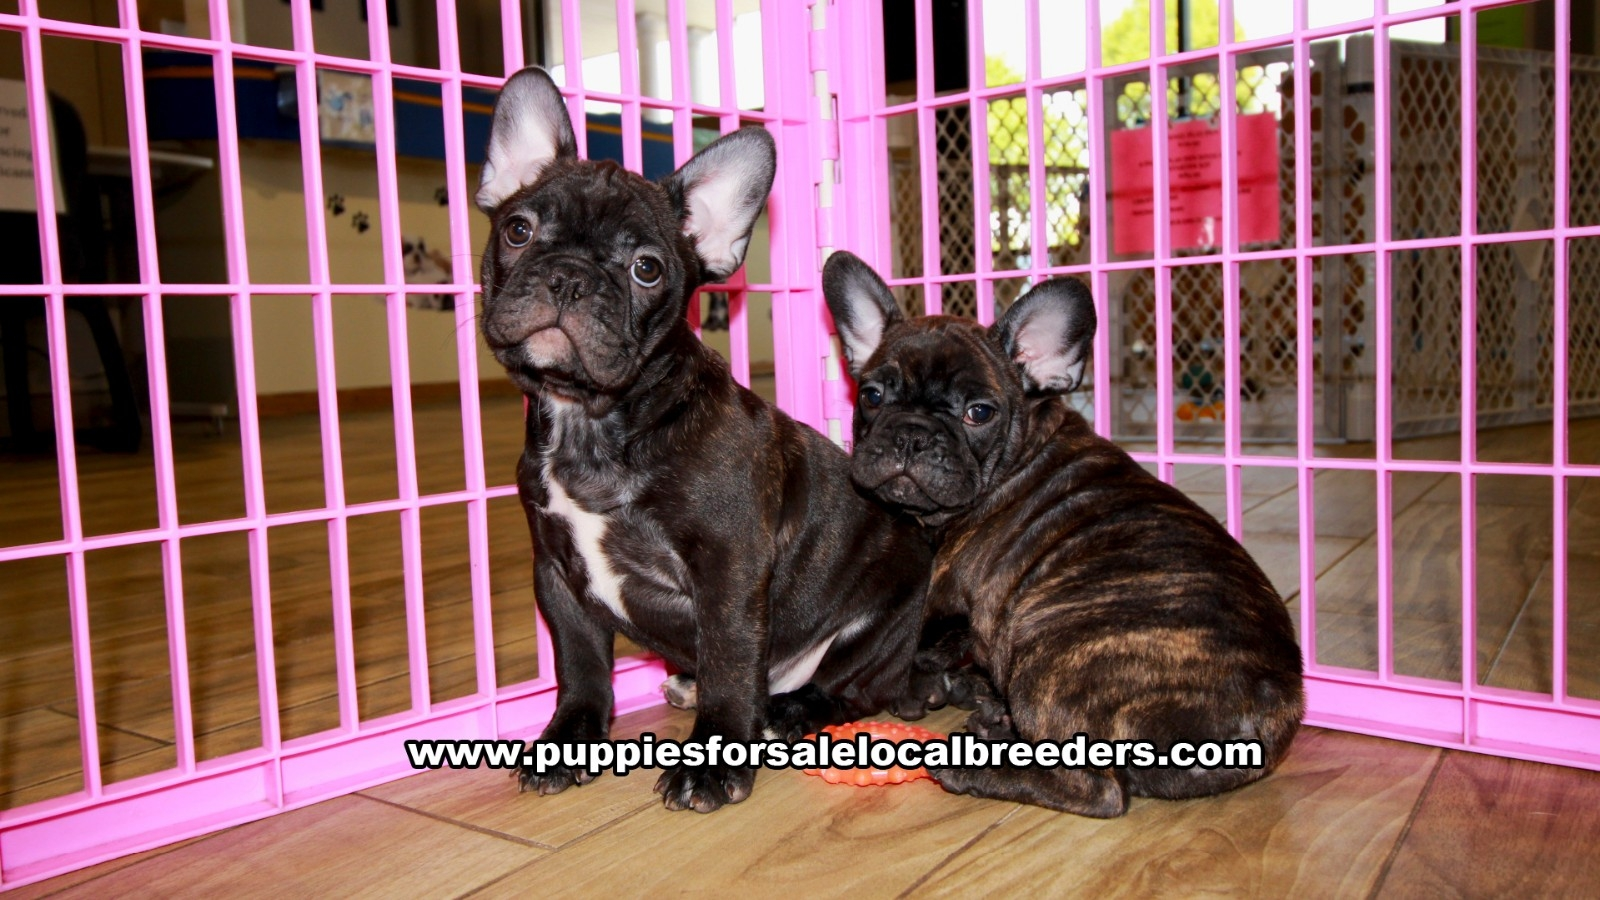 Chubby French Bulldog, Frenchie, Puppies For Sale In Georgia, Local Breeders Near Atlanta, Ga